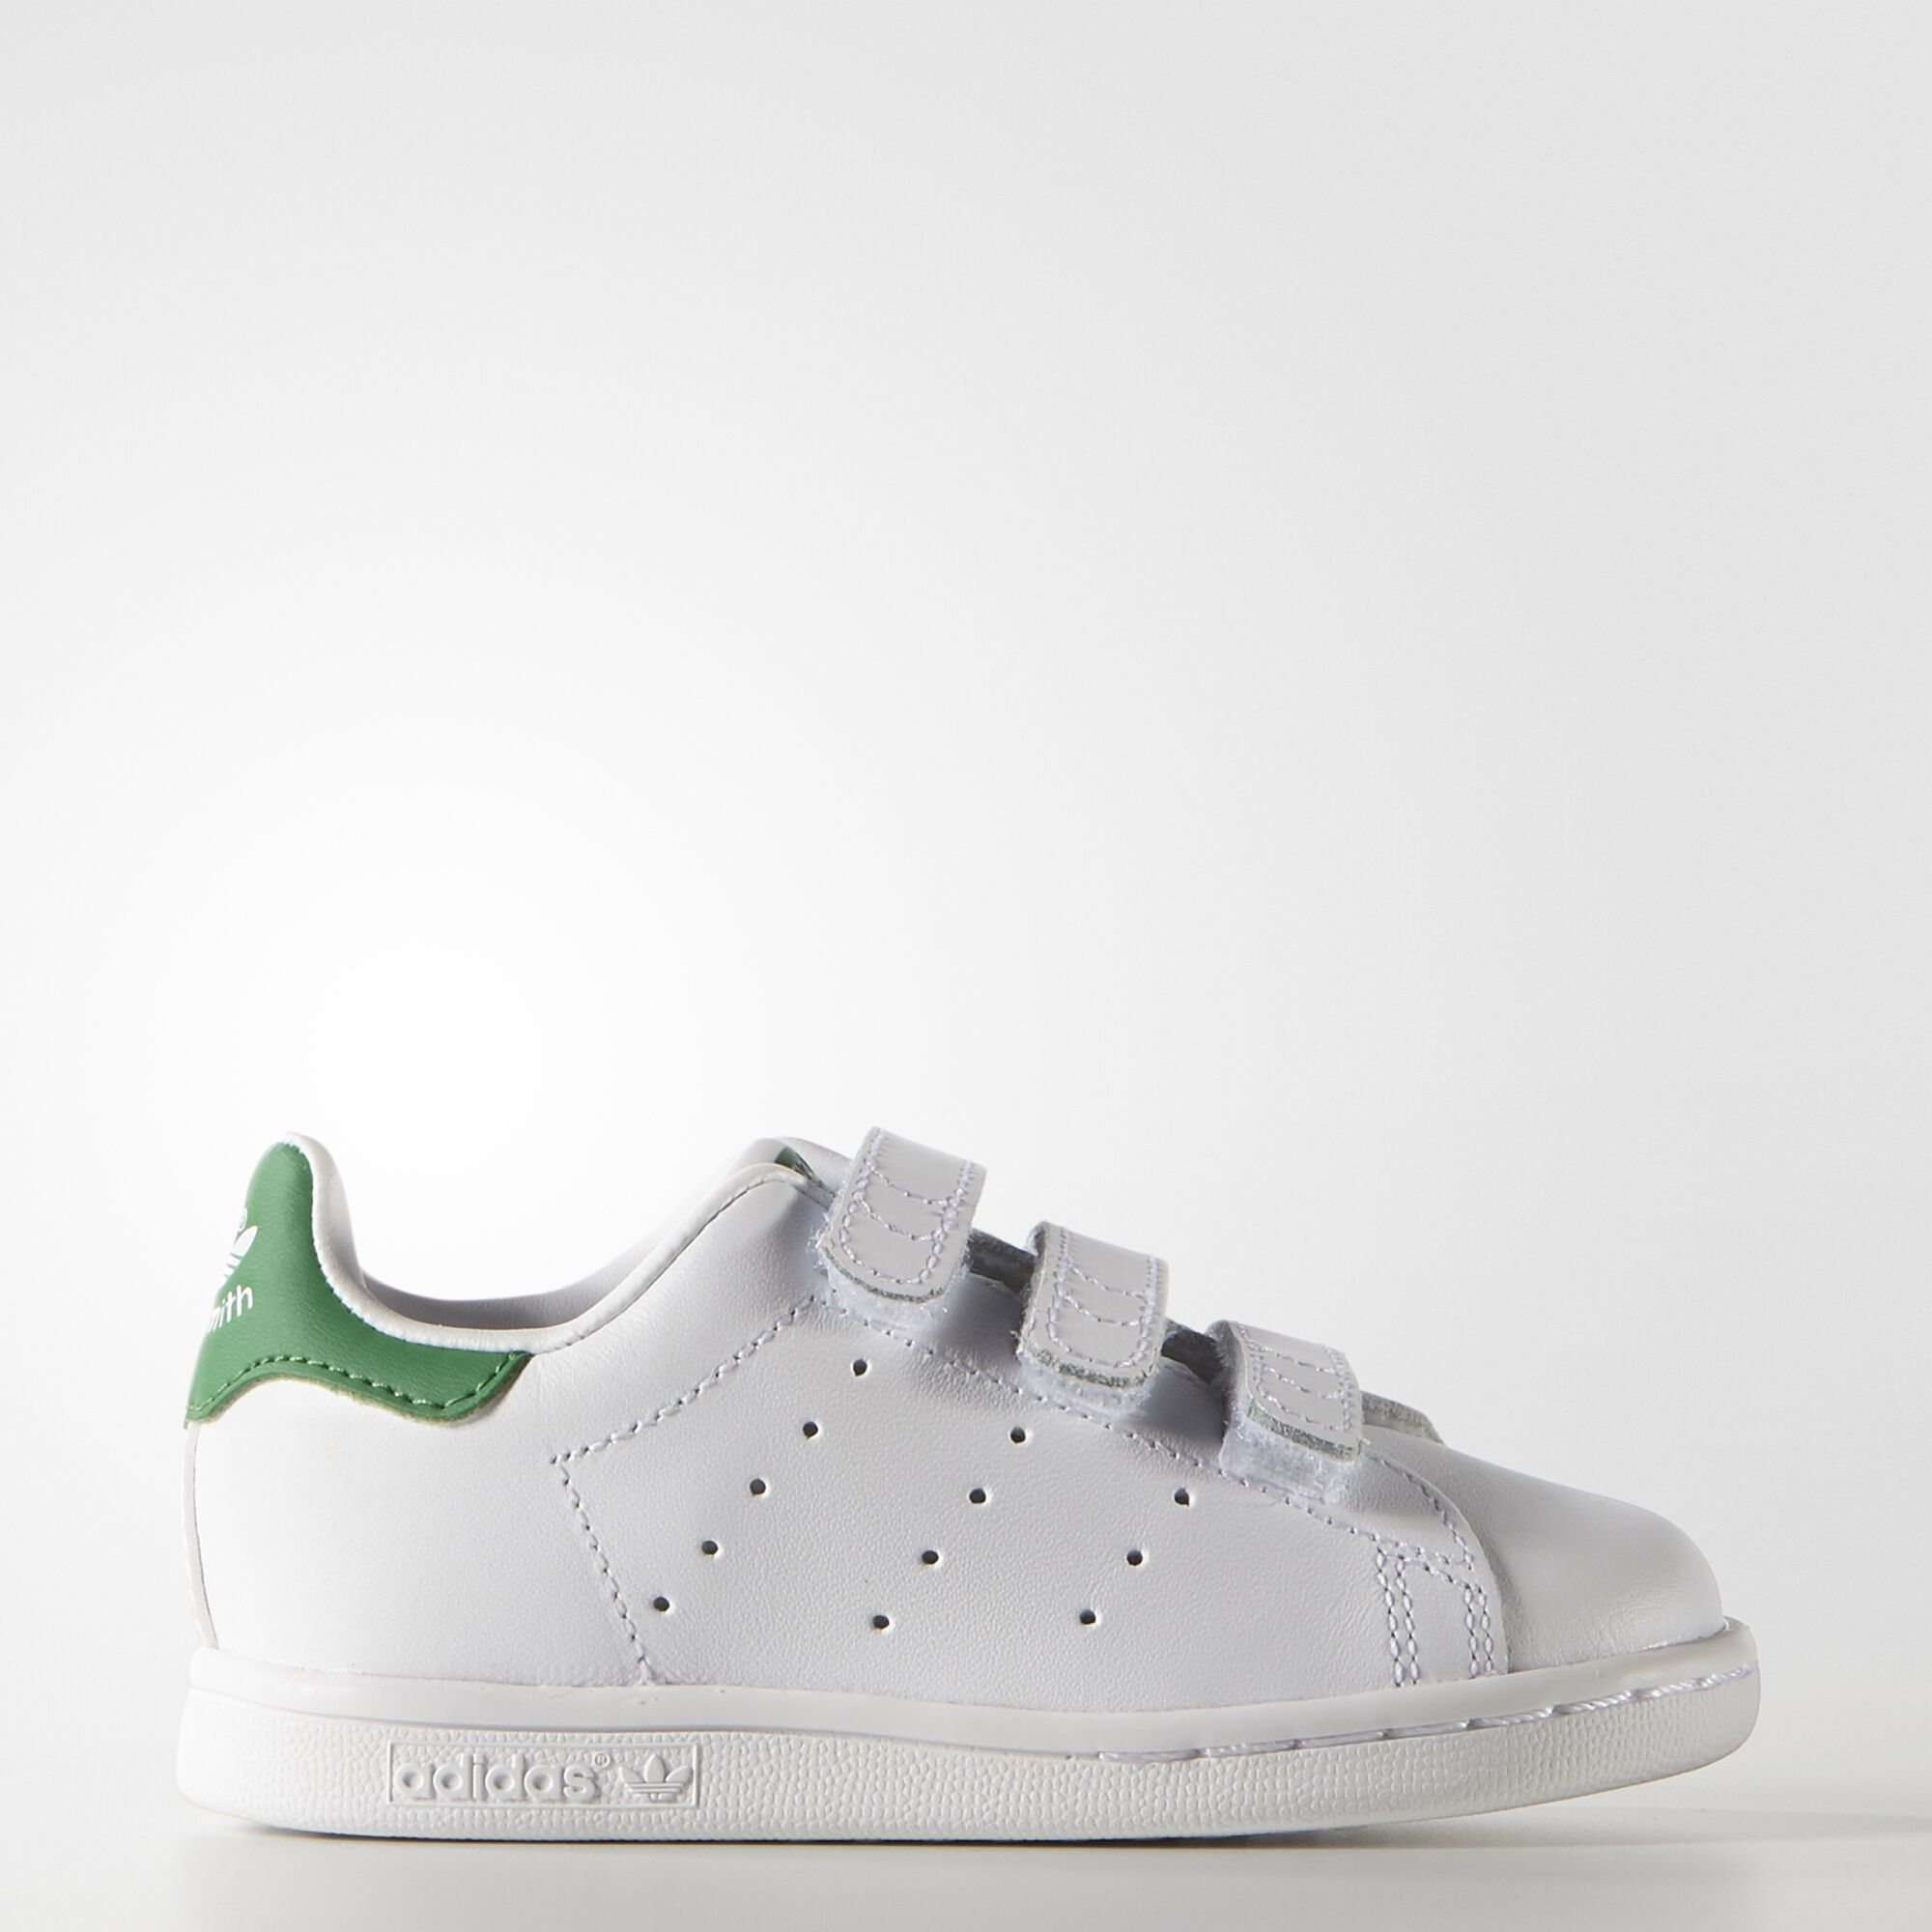 Adidas Toddler Shoes Nz